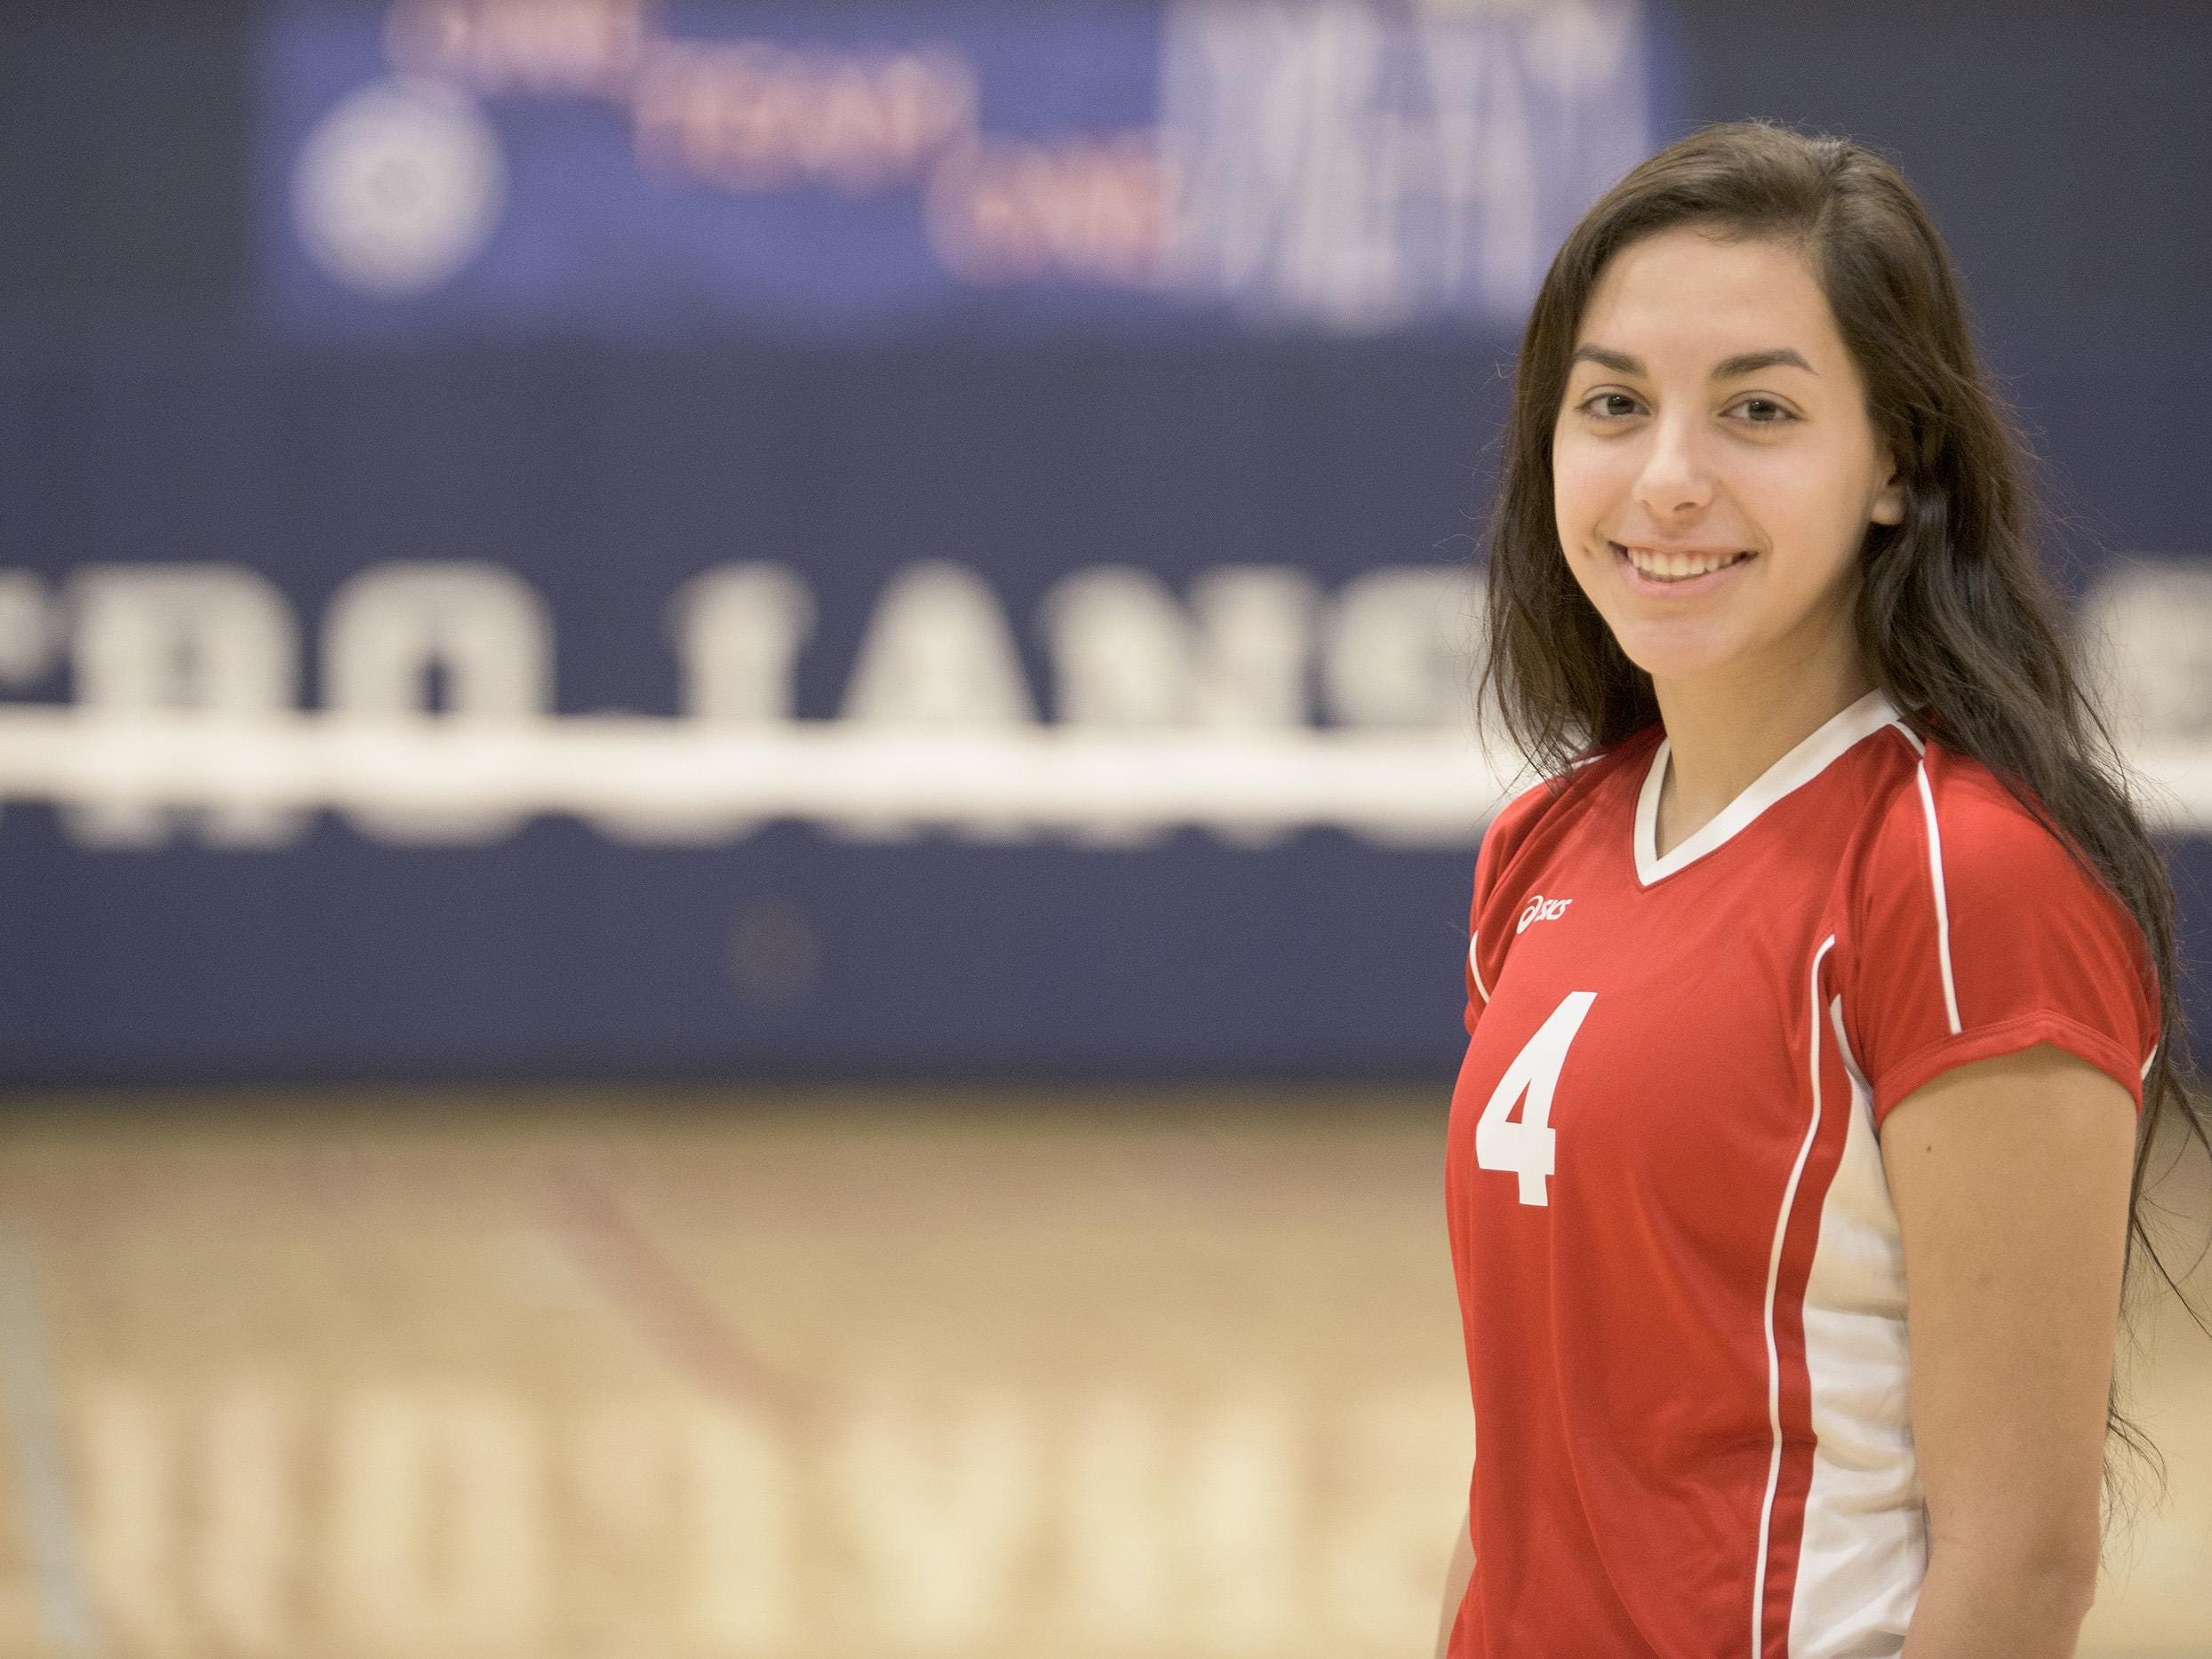 Kennedy High School senior Lakin Susee was named player of the year in the OSAA 2A Tri-River Conference.